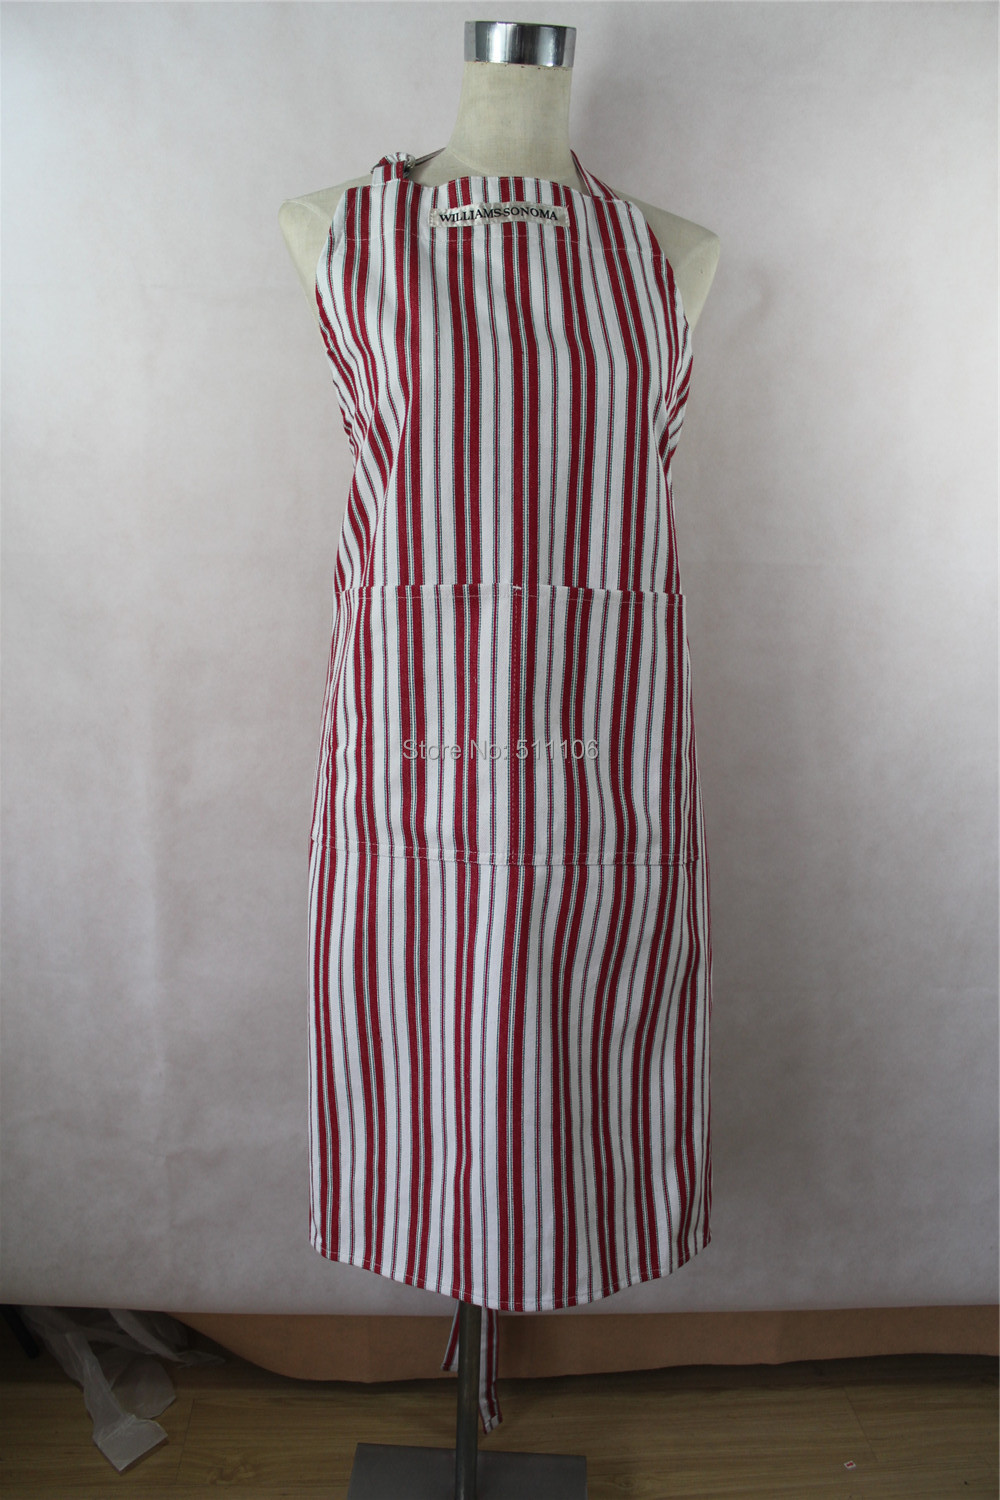 China Supplier Promotional Kitchen Apron Recyclable Cotton Apron(China (Mainland))